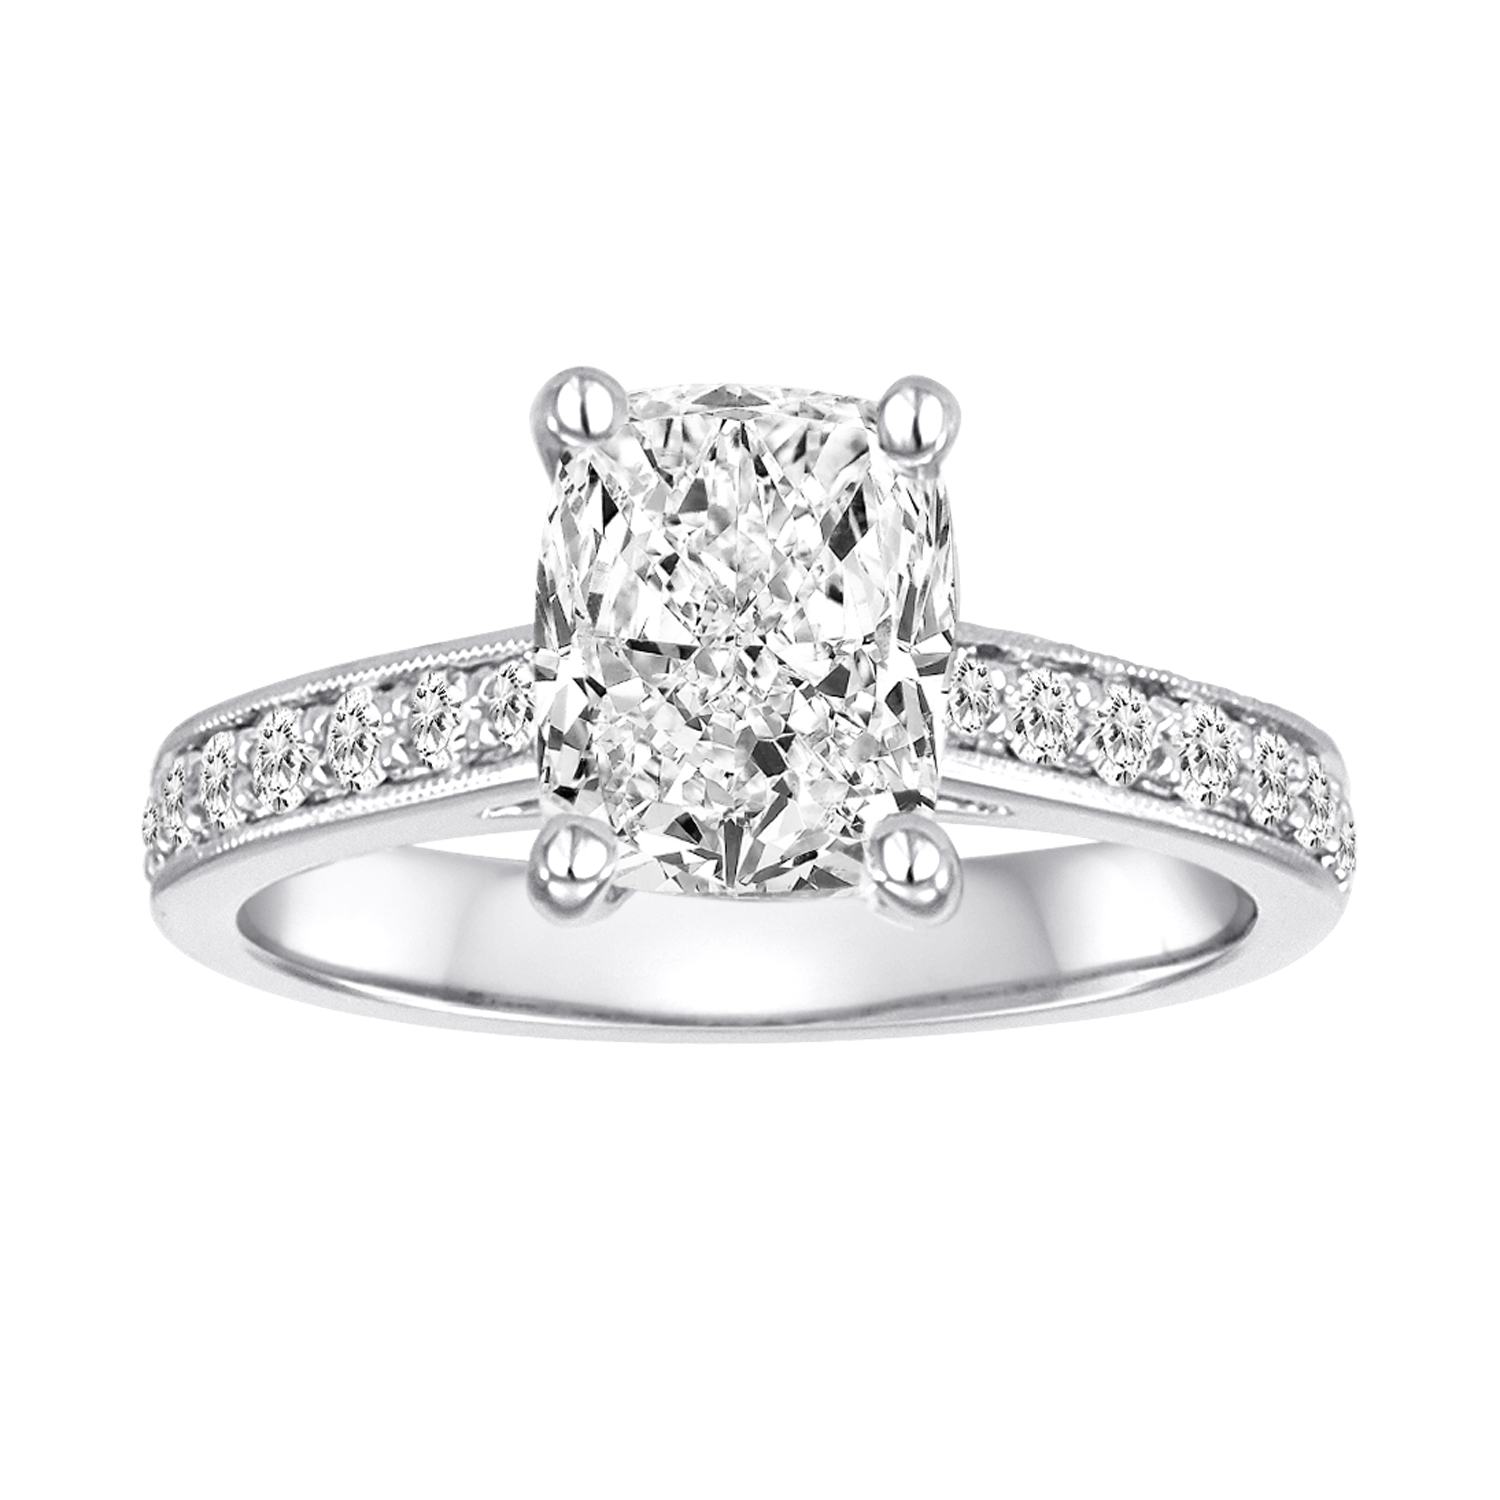 of your wedding rings buy jewelry beautiful love bridal for virgo jewellery